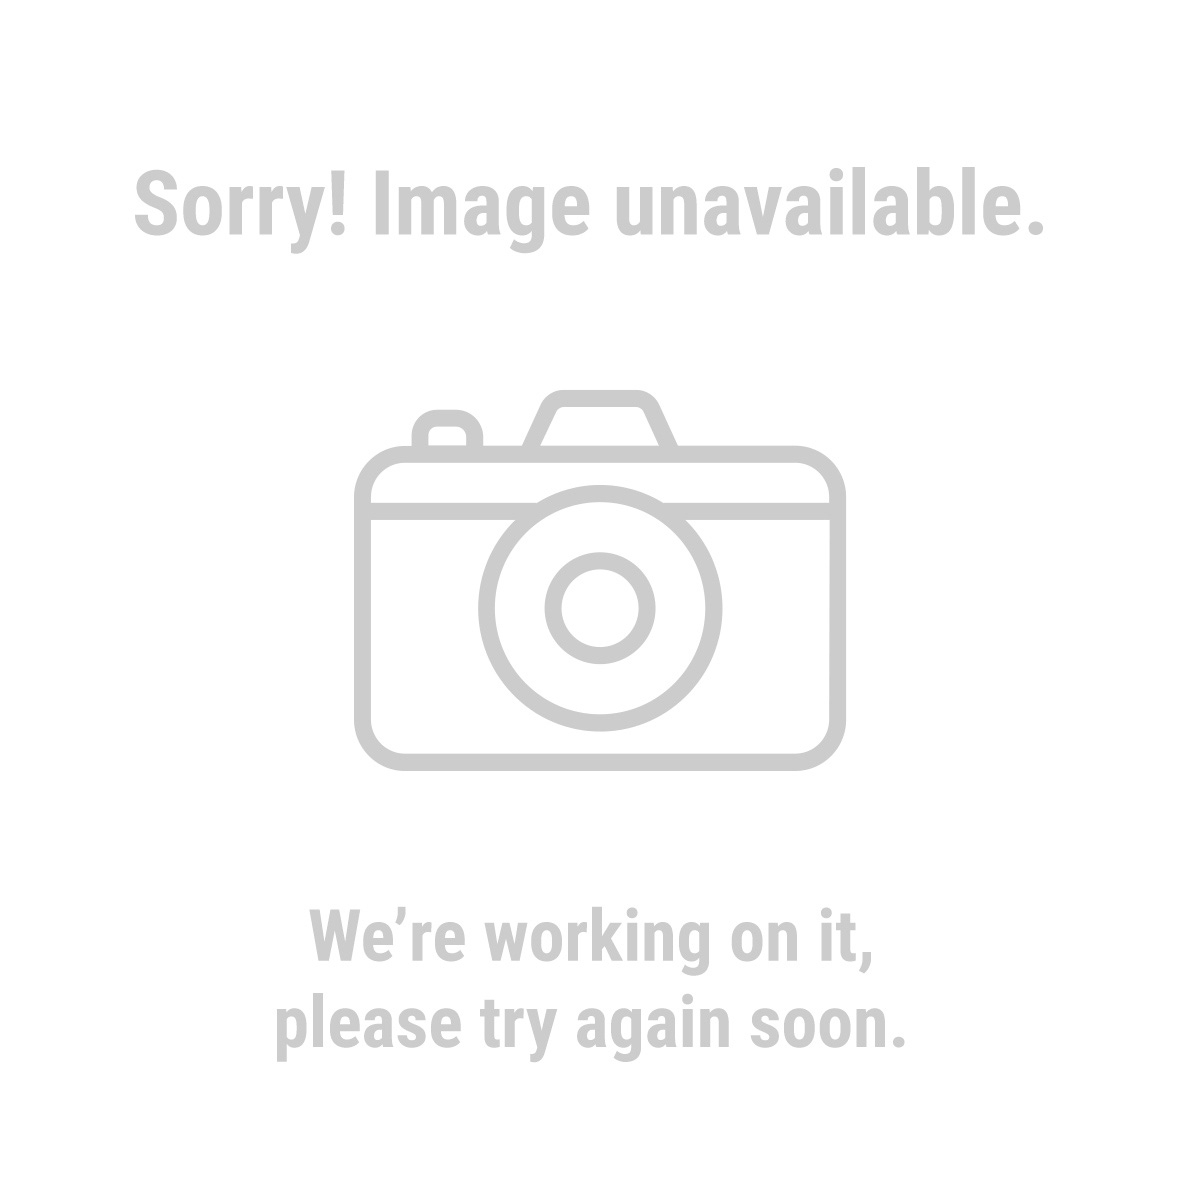 97241 Jumbo Magnifying Glass